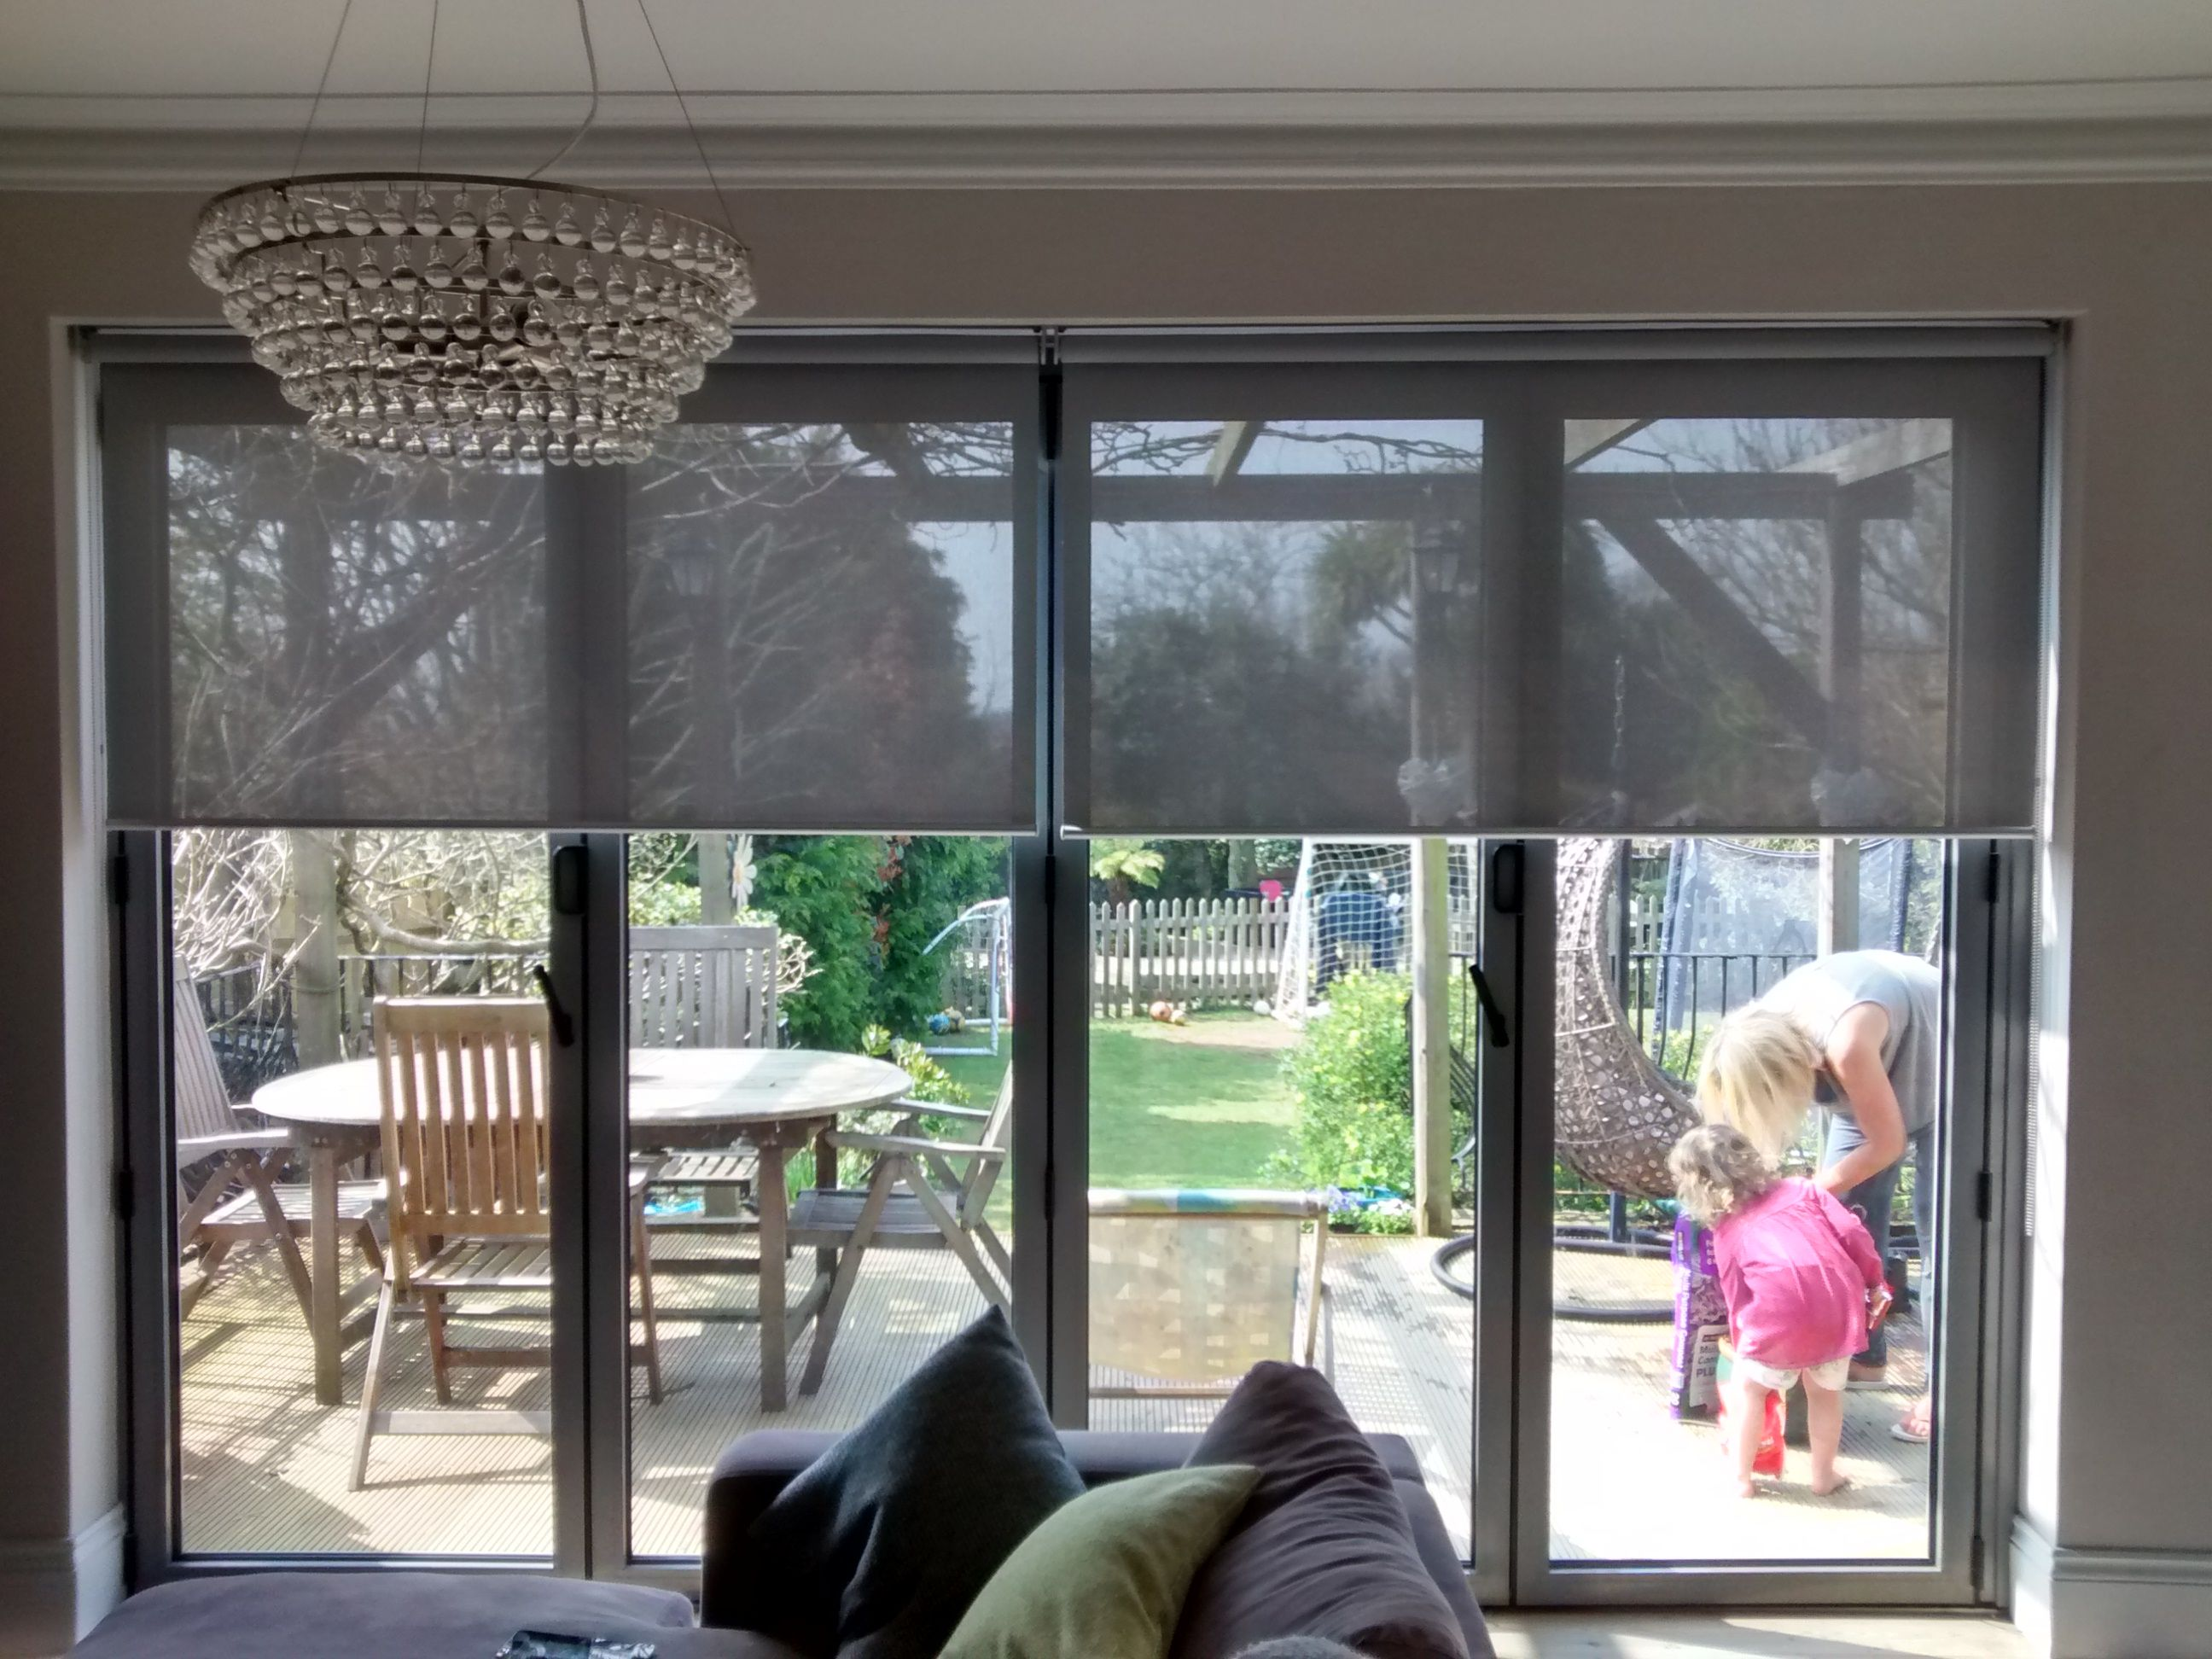 Slide door blinds - Sunscreen Roller Blinds Over Bi Fold Doors In Living Room Supplied And Installed By